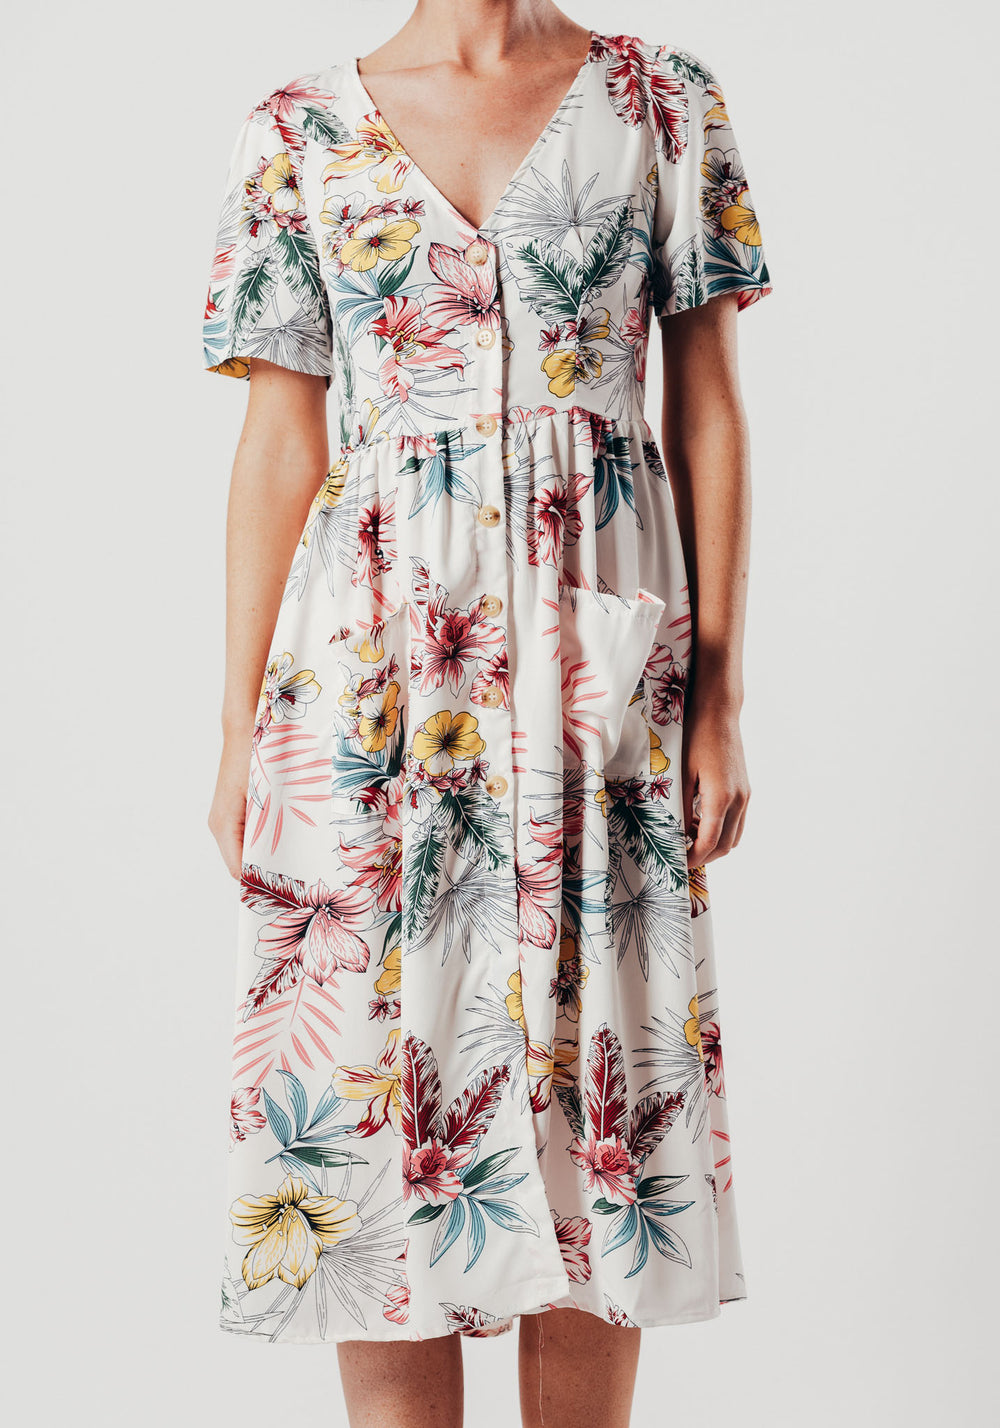 White Floral Print Button Up Midi Dress